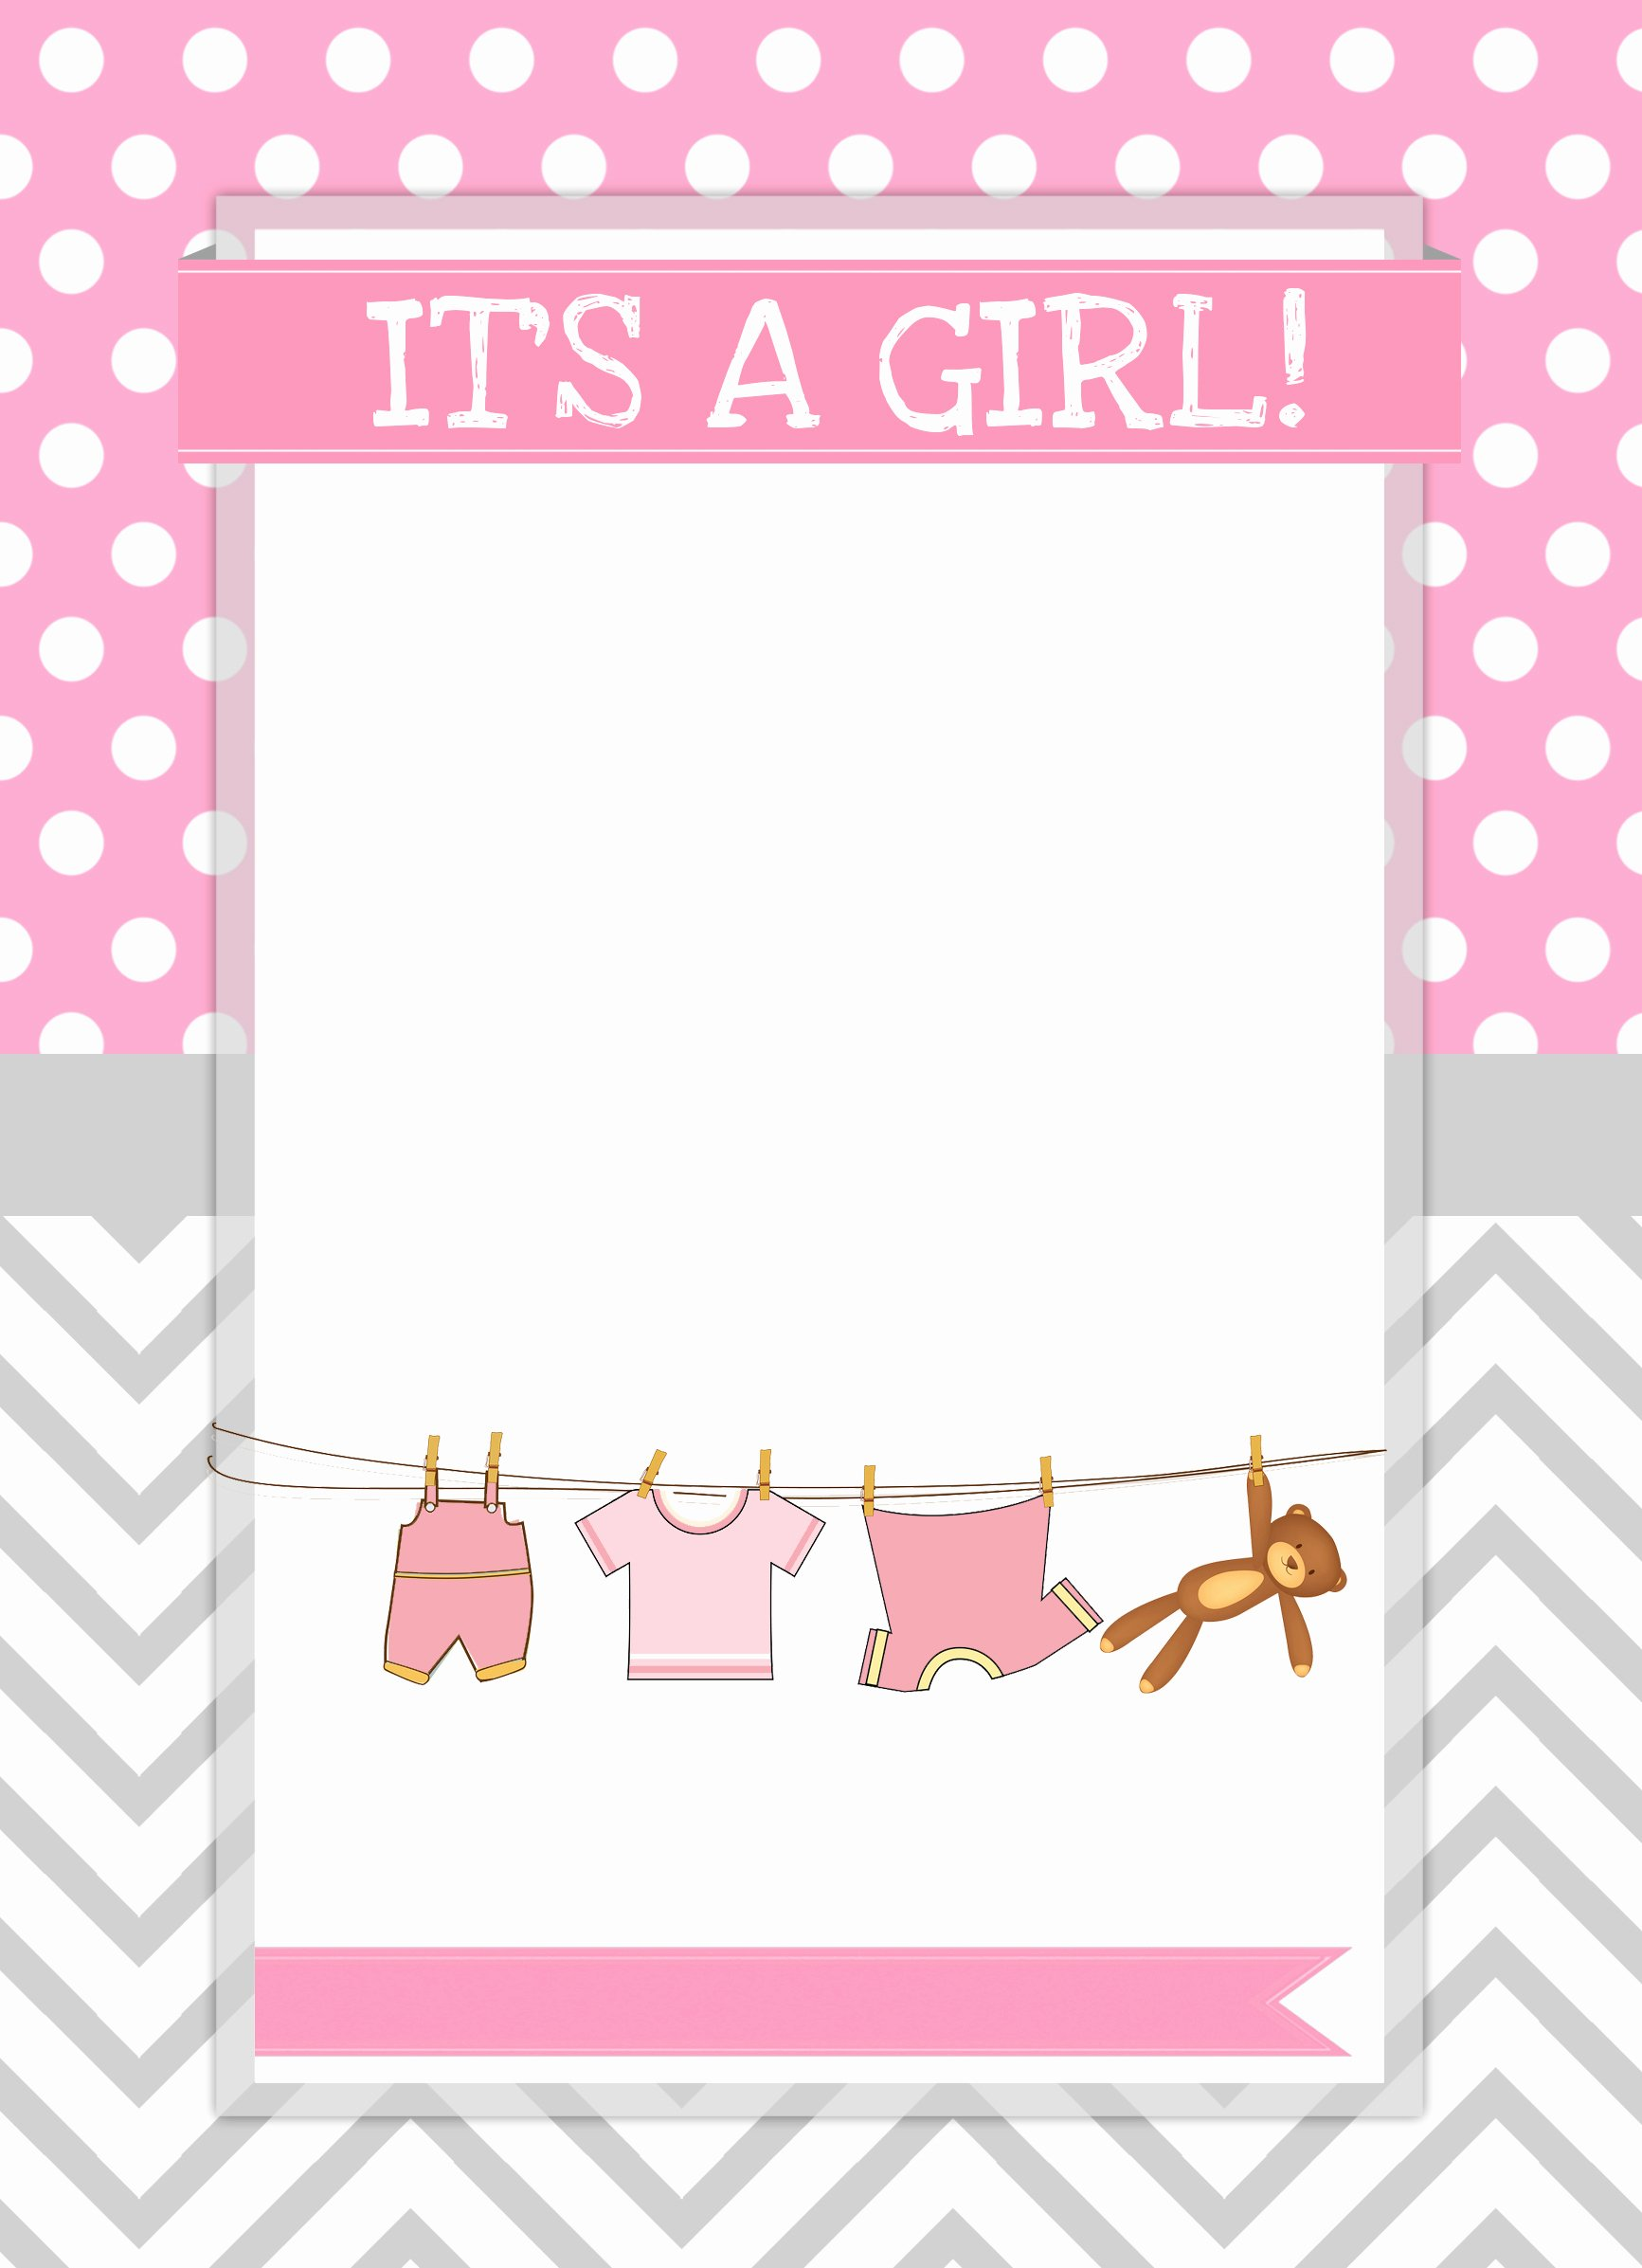 Free Printable Baby Shower Card Luxury Baby Girl Shower Free Printables How to Nest for Less™